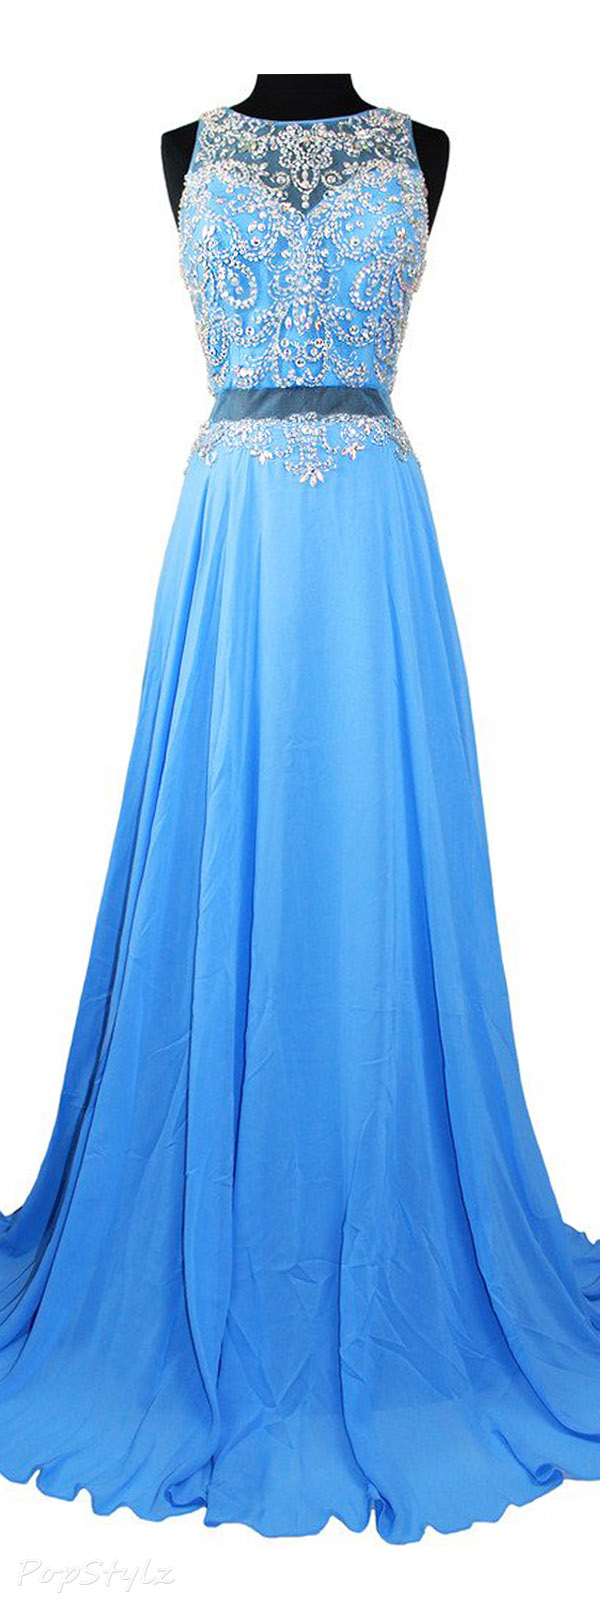 Meier Sheer Back Sleeveless Rhinestone Long Fromal Dress